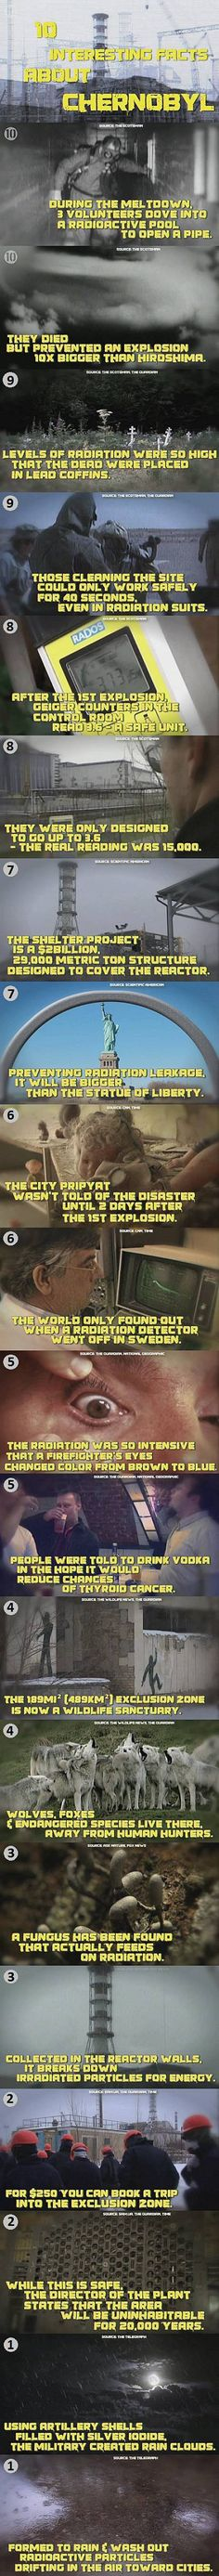 10 interesting facts about Chernobyl.